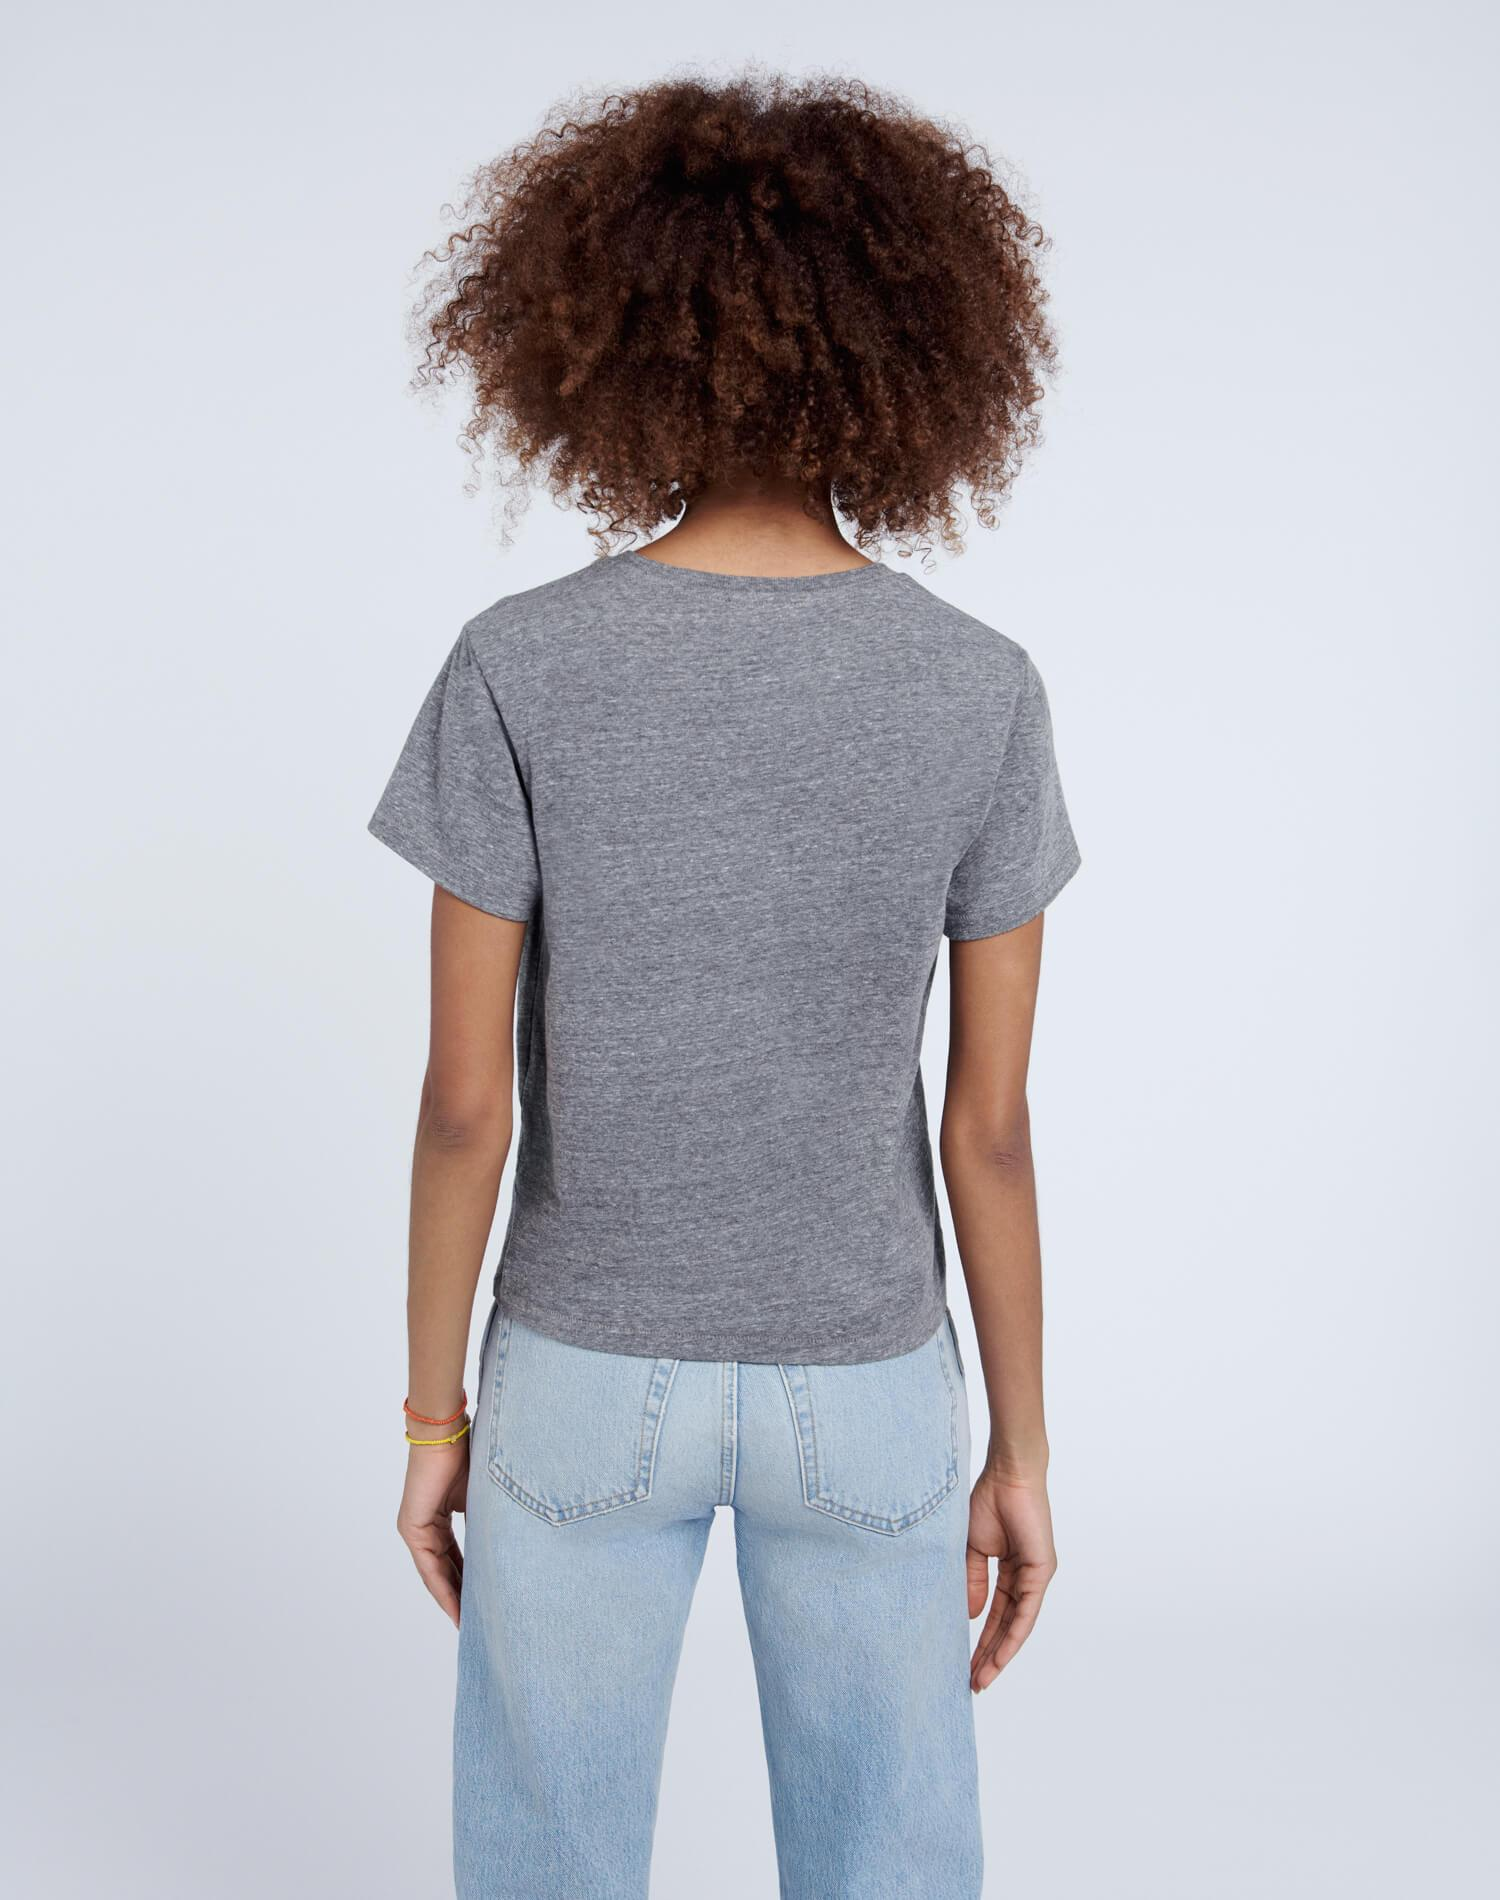 Recycled Classic Tee - Heather Grey 3